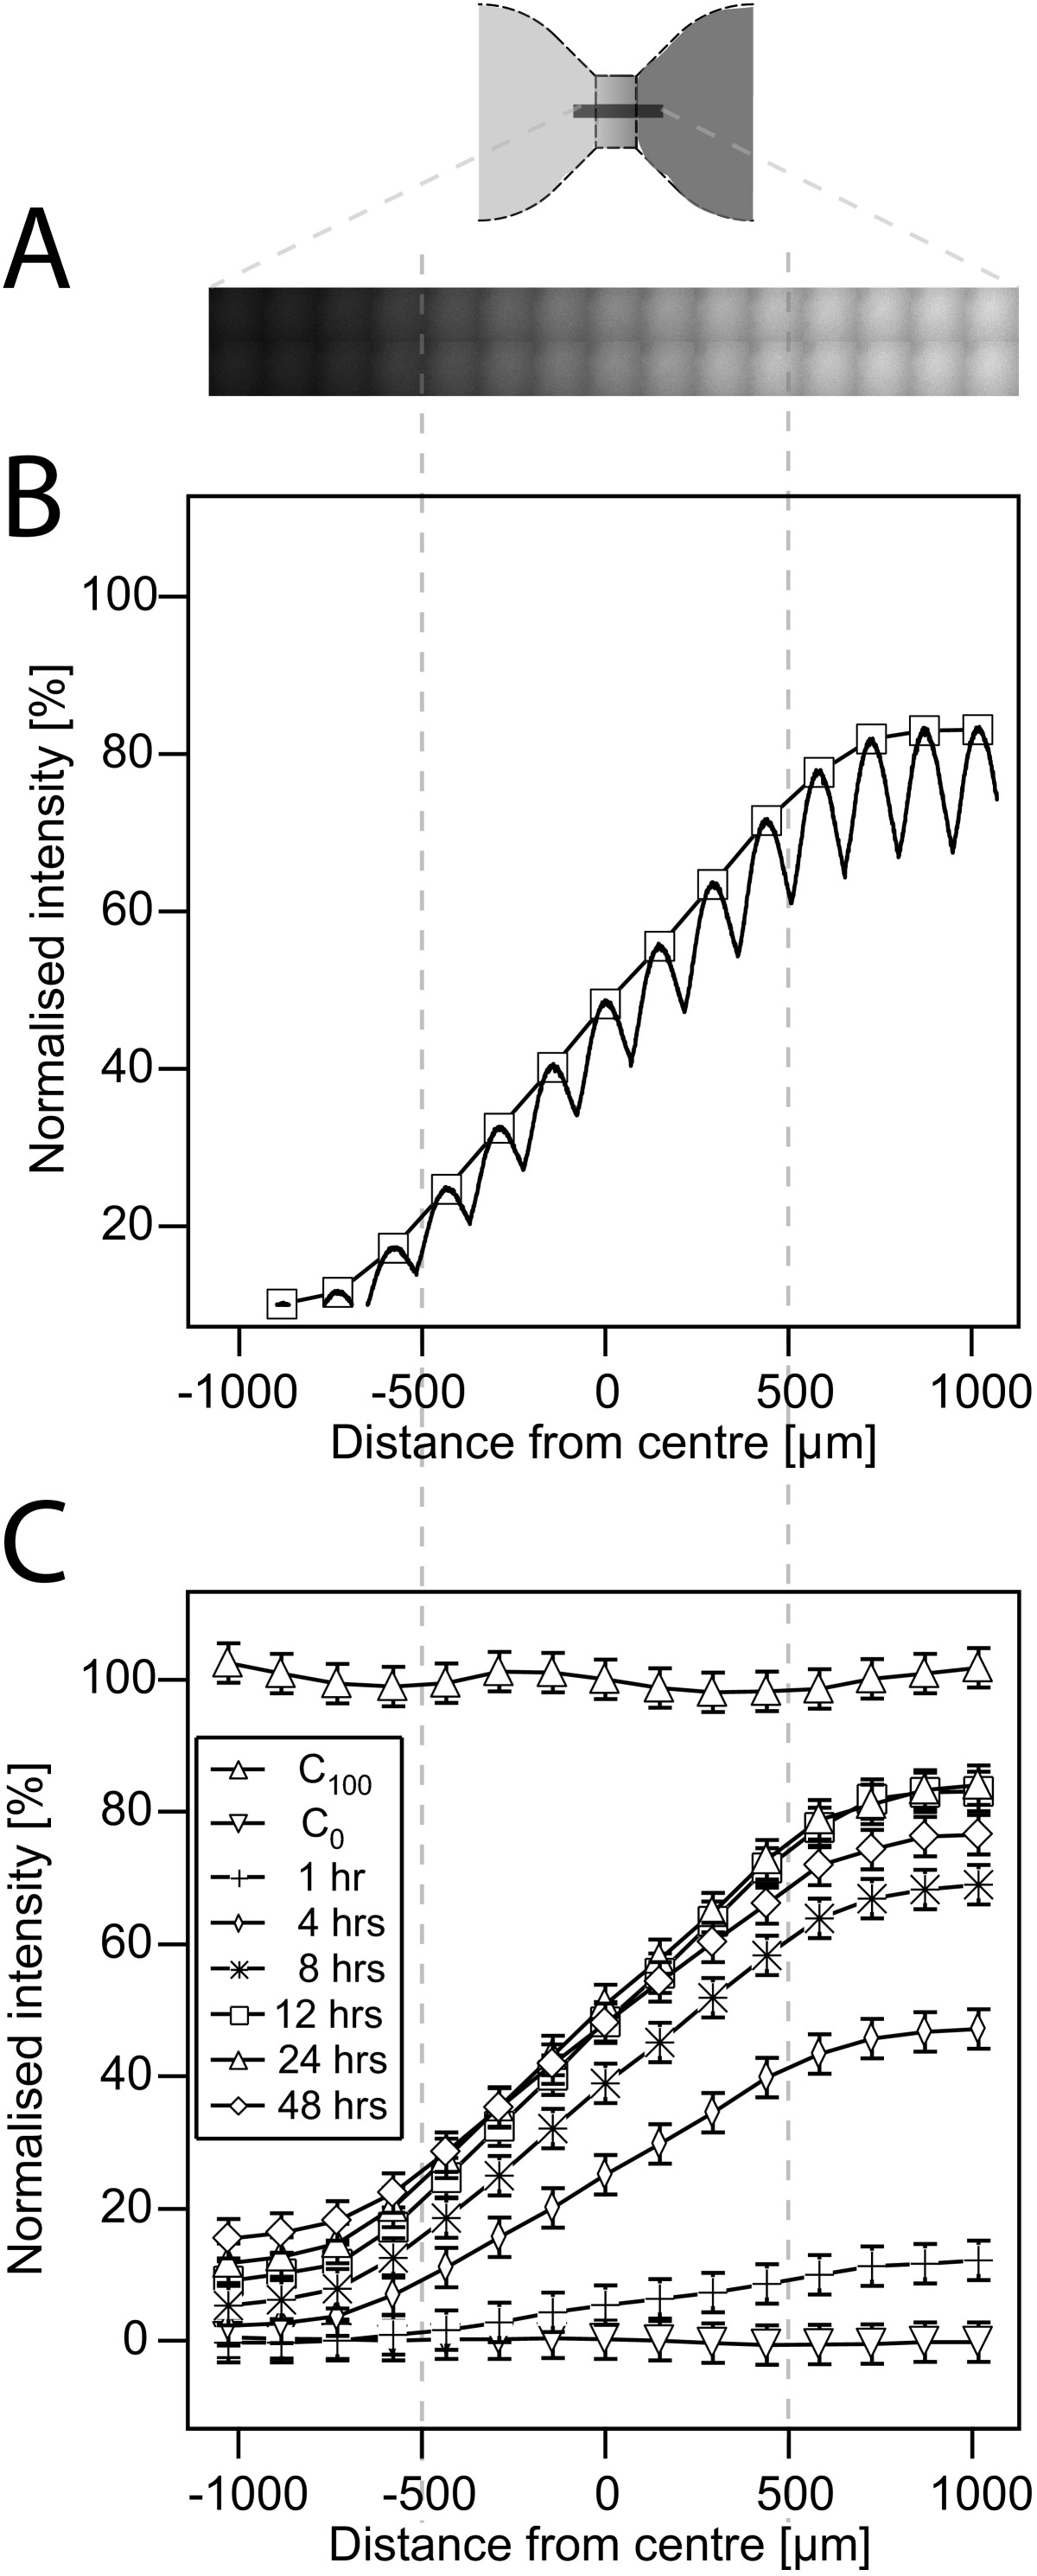 http://static-content.springer.com/image/art%3A10.1186%2F1471-2121-12-21/MediaObjects/12860_2010_Article_567_Fig3_HTML.jpg